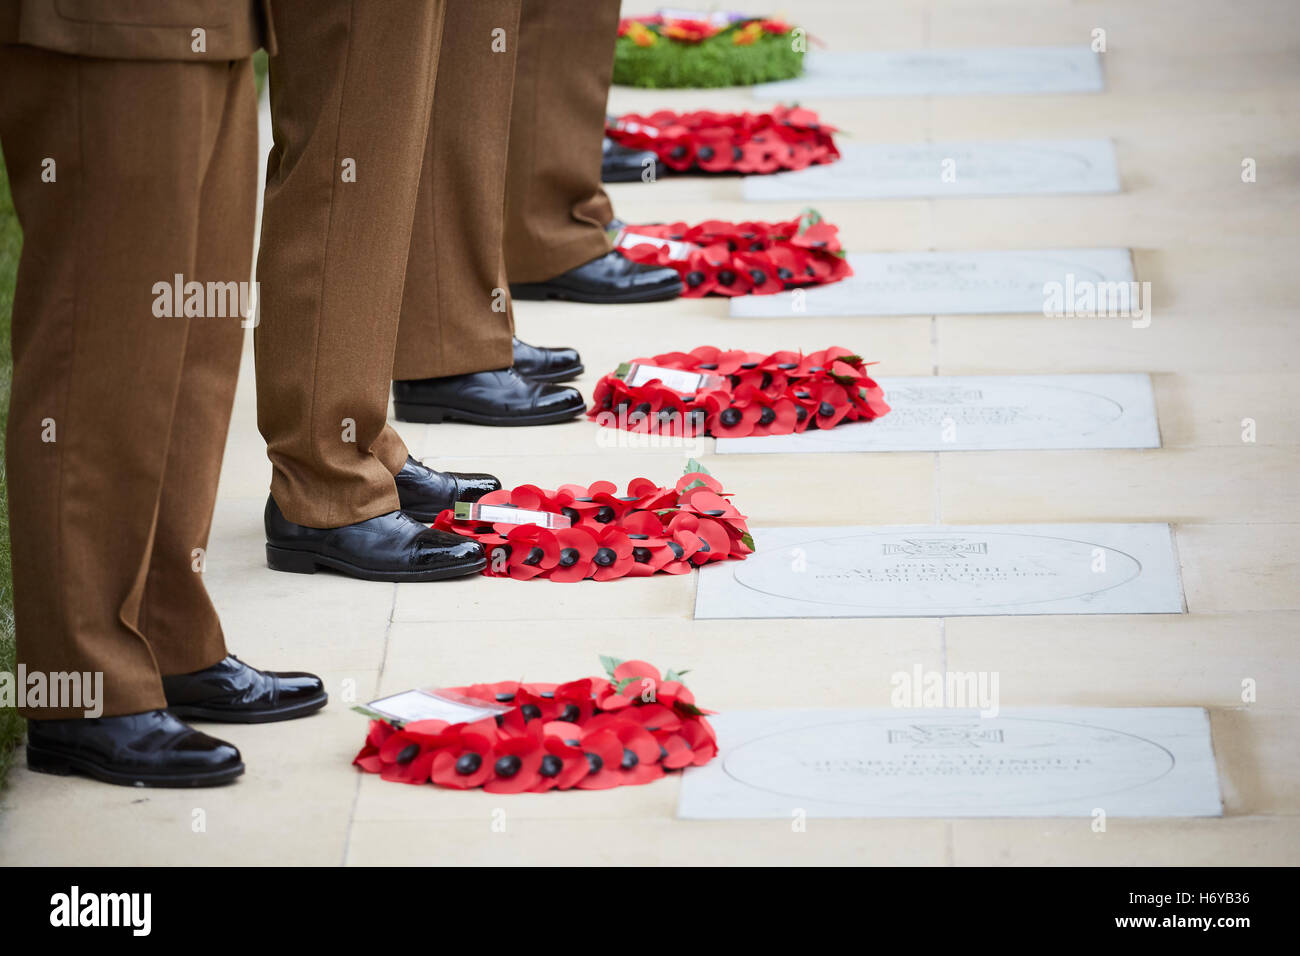 Remembrance poppy wreaths  artificial flower  commemorate military personnel died war  military veterans commemorate - Stock Image